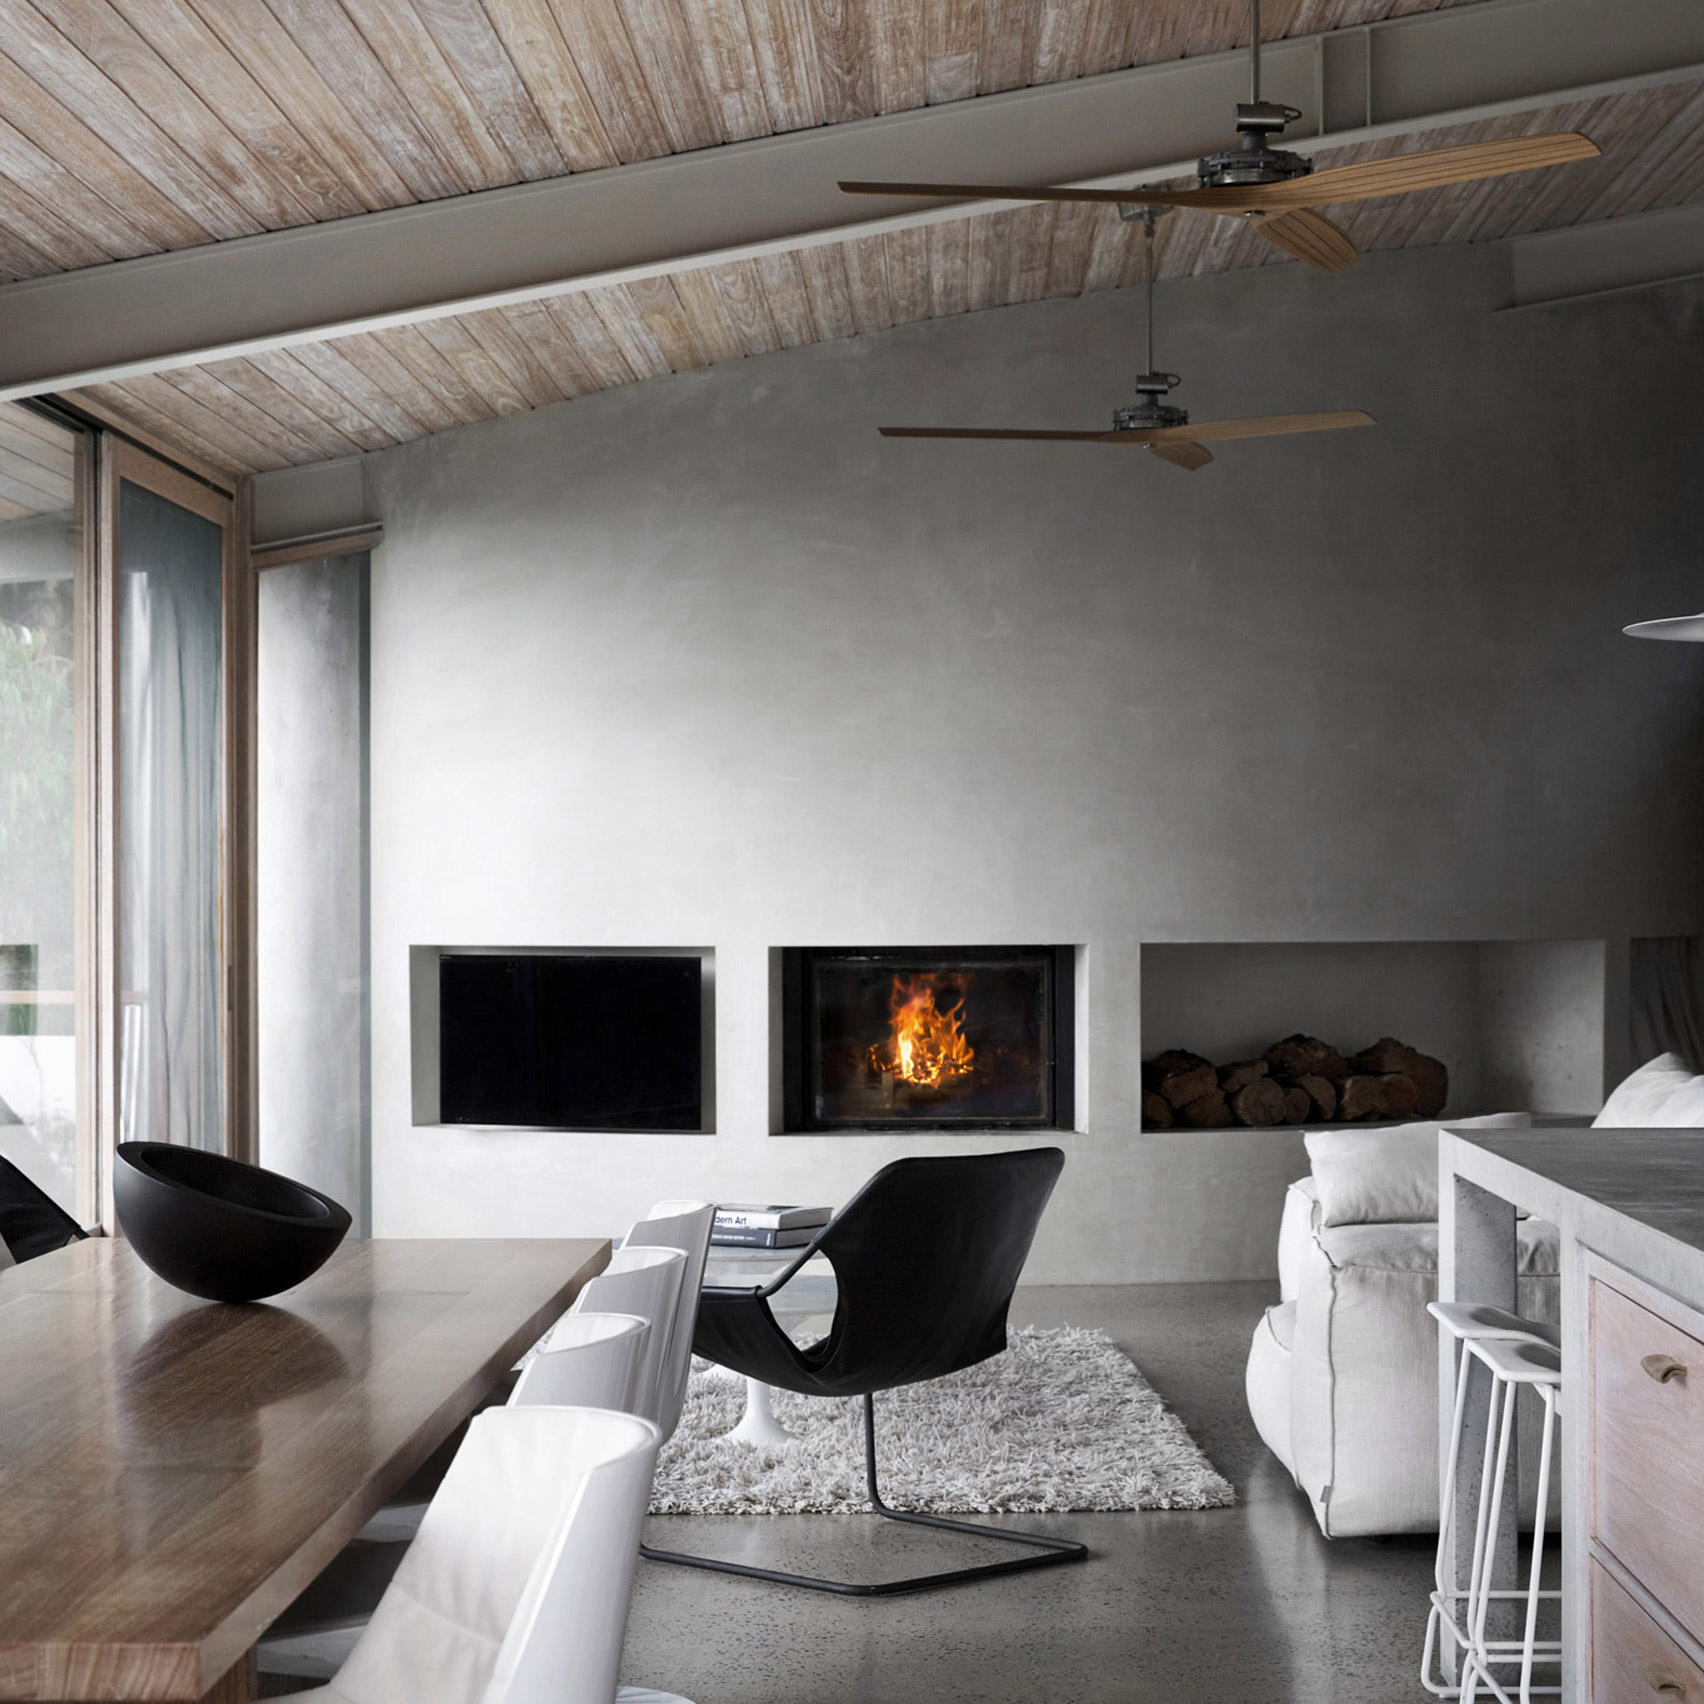 Concrete living room with fireplace